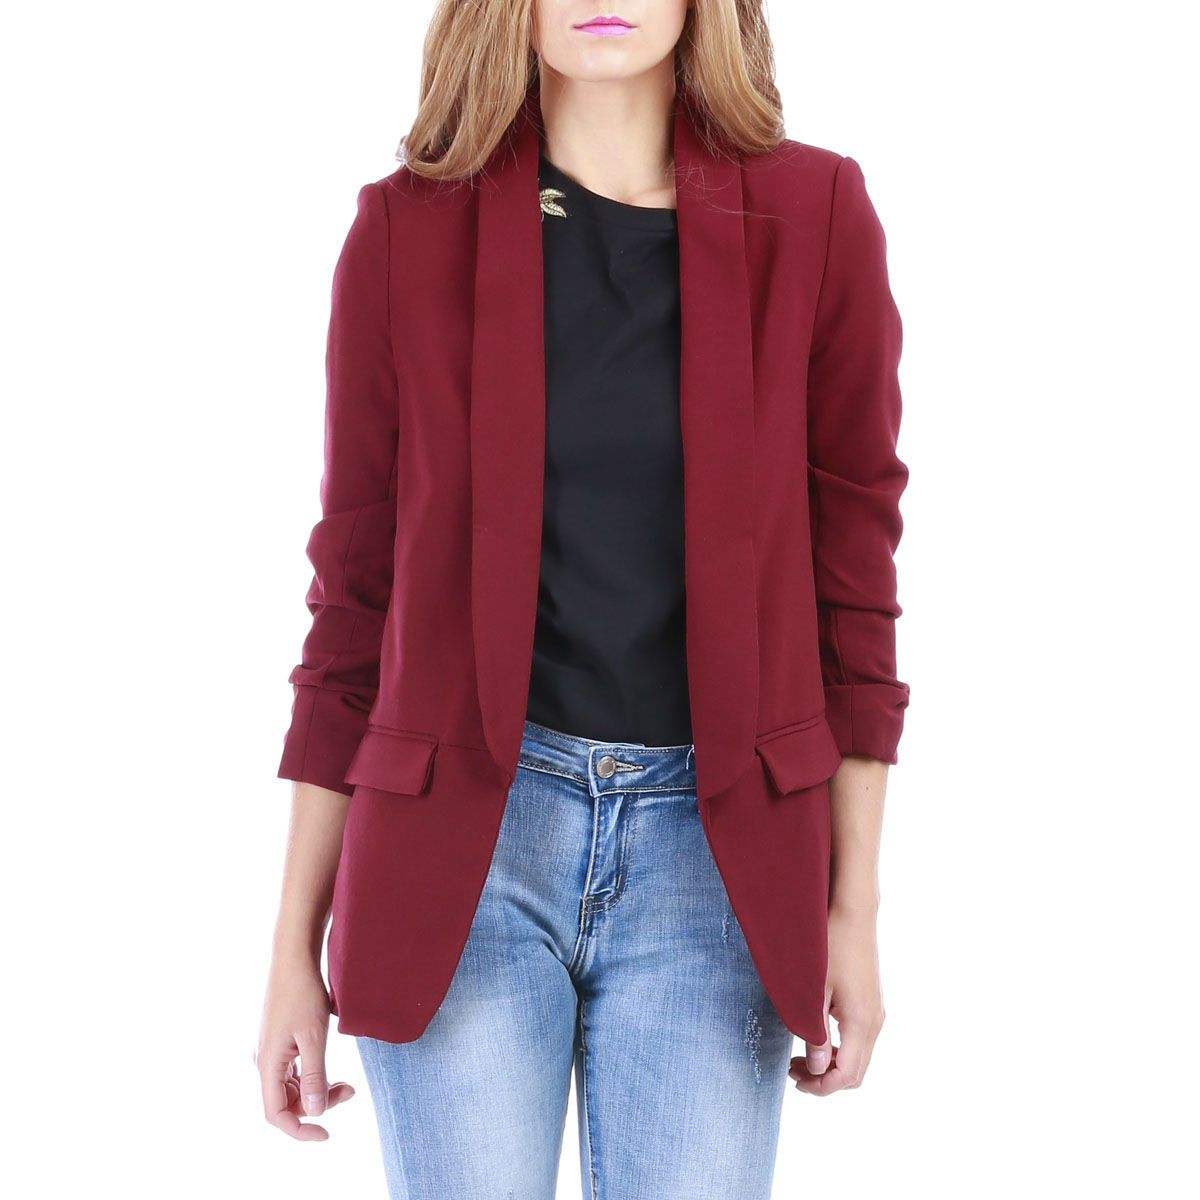 Shop for Smythe Velvet Peaked Lapel Blazer in Bordeaux at REVOLVE. Free day shipping and returns, 30 day price match guarantee.